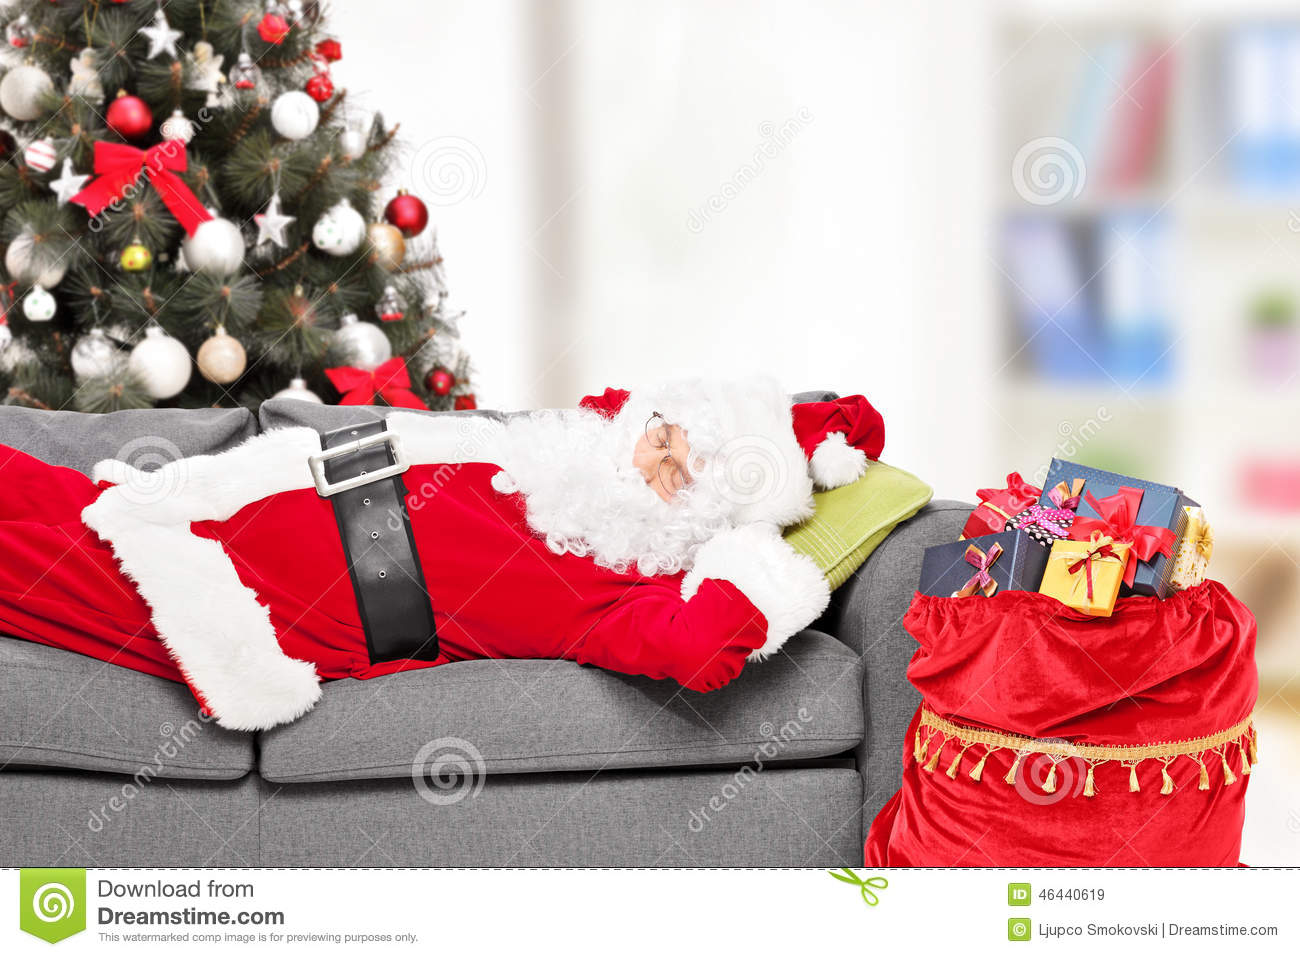 Merry Christmas Cushion Covers 45*45cm Santa Claus Pillow